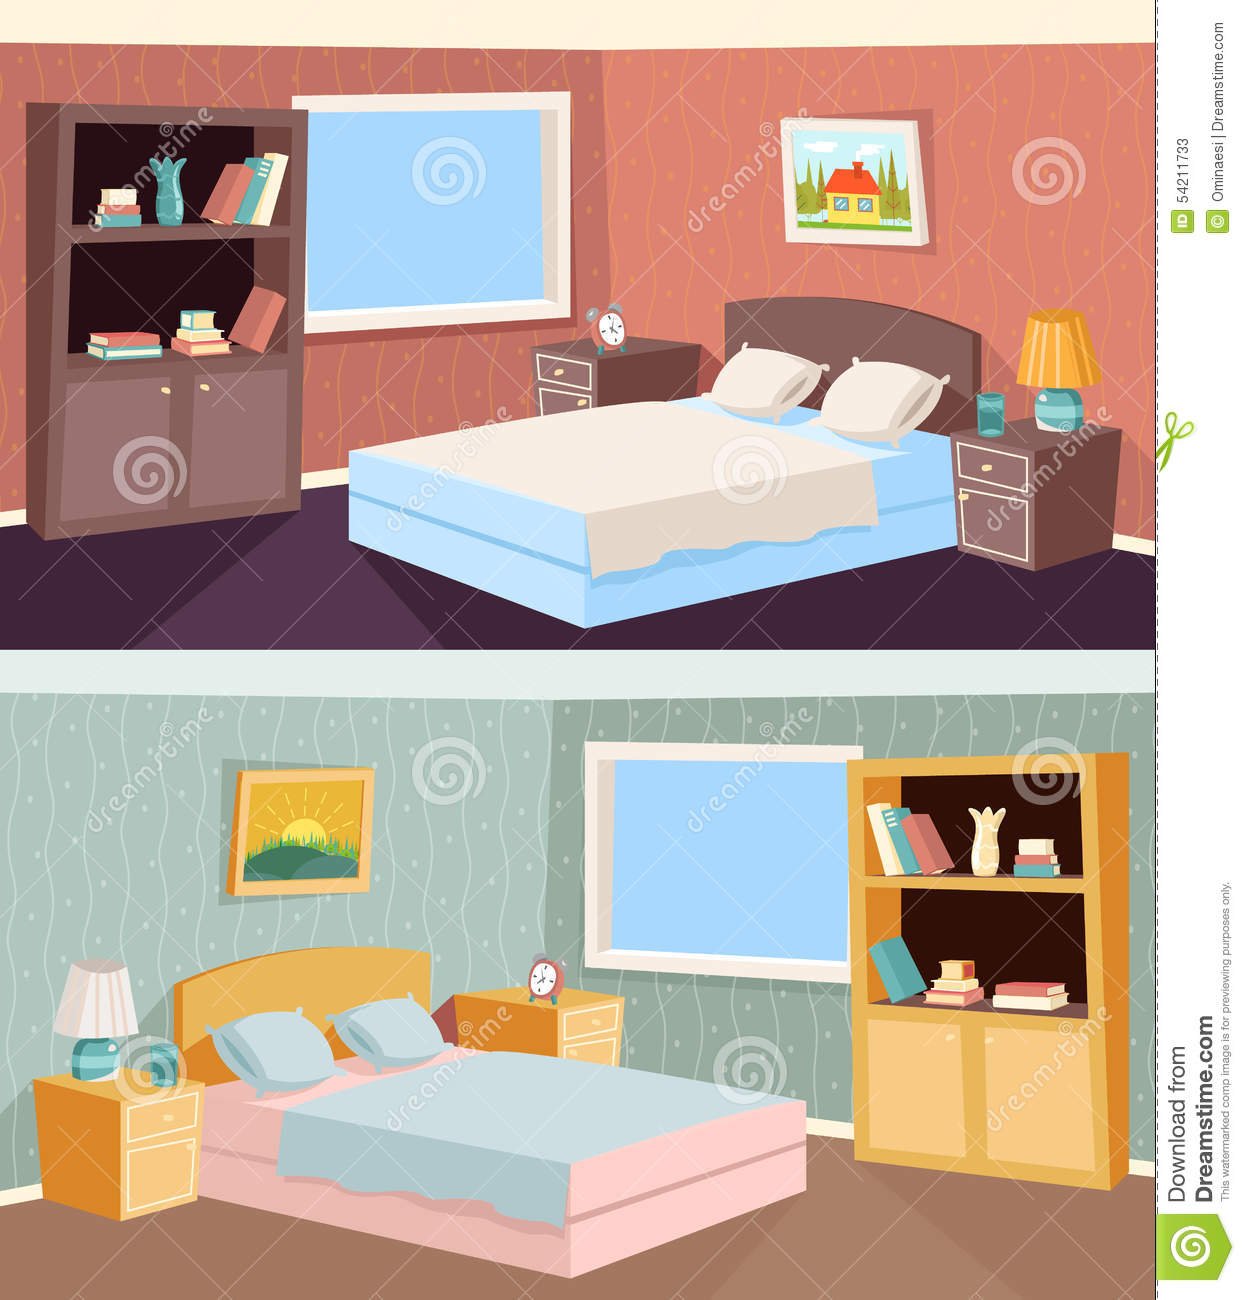 Illustration Cartoon Bedroom Apartment Livingroom Interior House Room